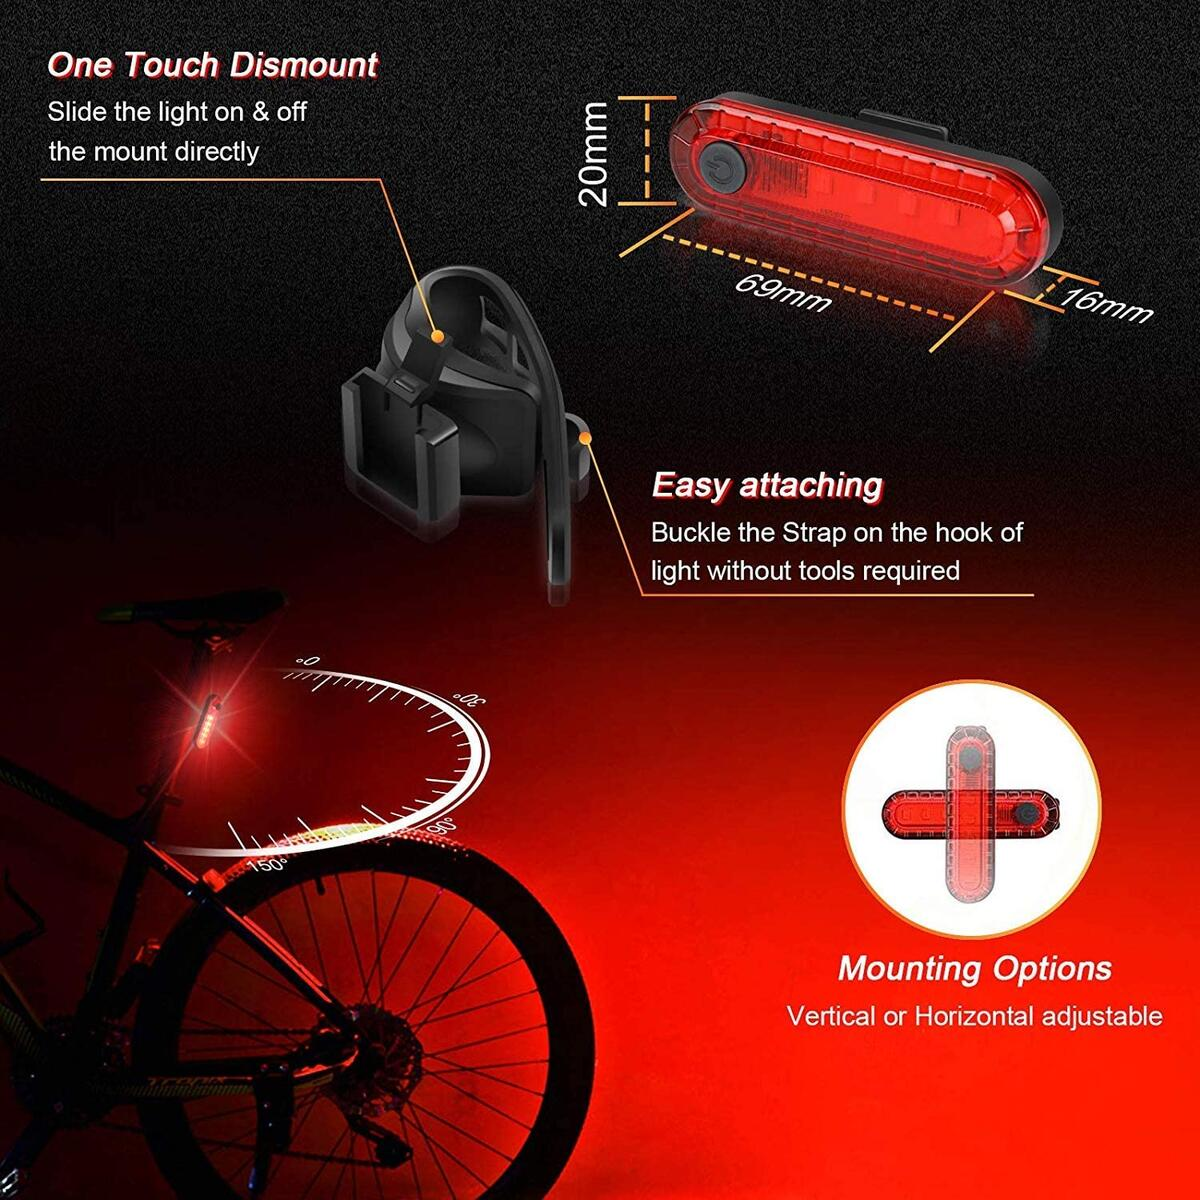 WASAGA TECOVE 1000 Front Bicycle Light - Super Bright Rechargeable Bike Headlight for Commuters, Road Cyclists & Mountain Bikers